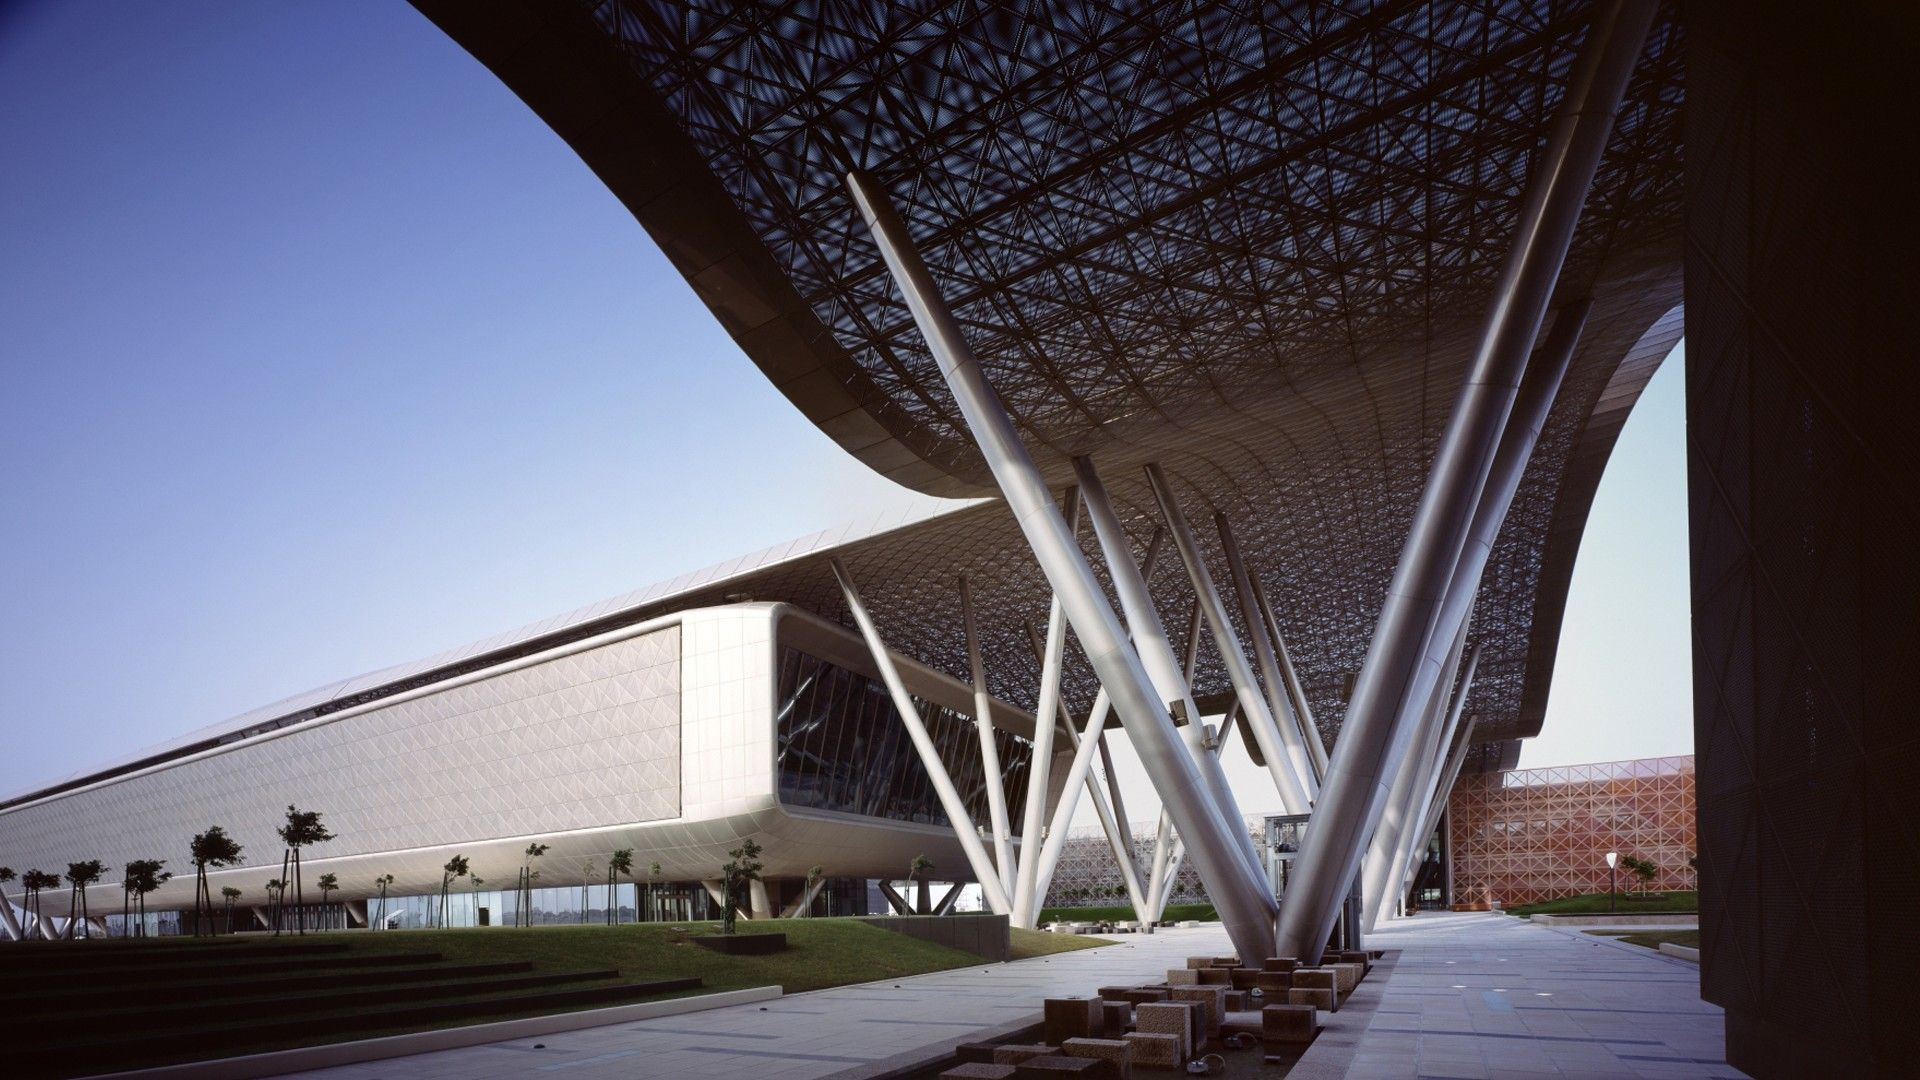 Woodsbagot qatar science and technology park for Architecture firms in qatar